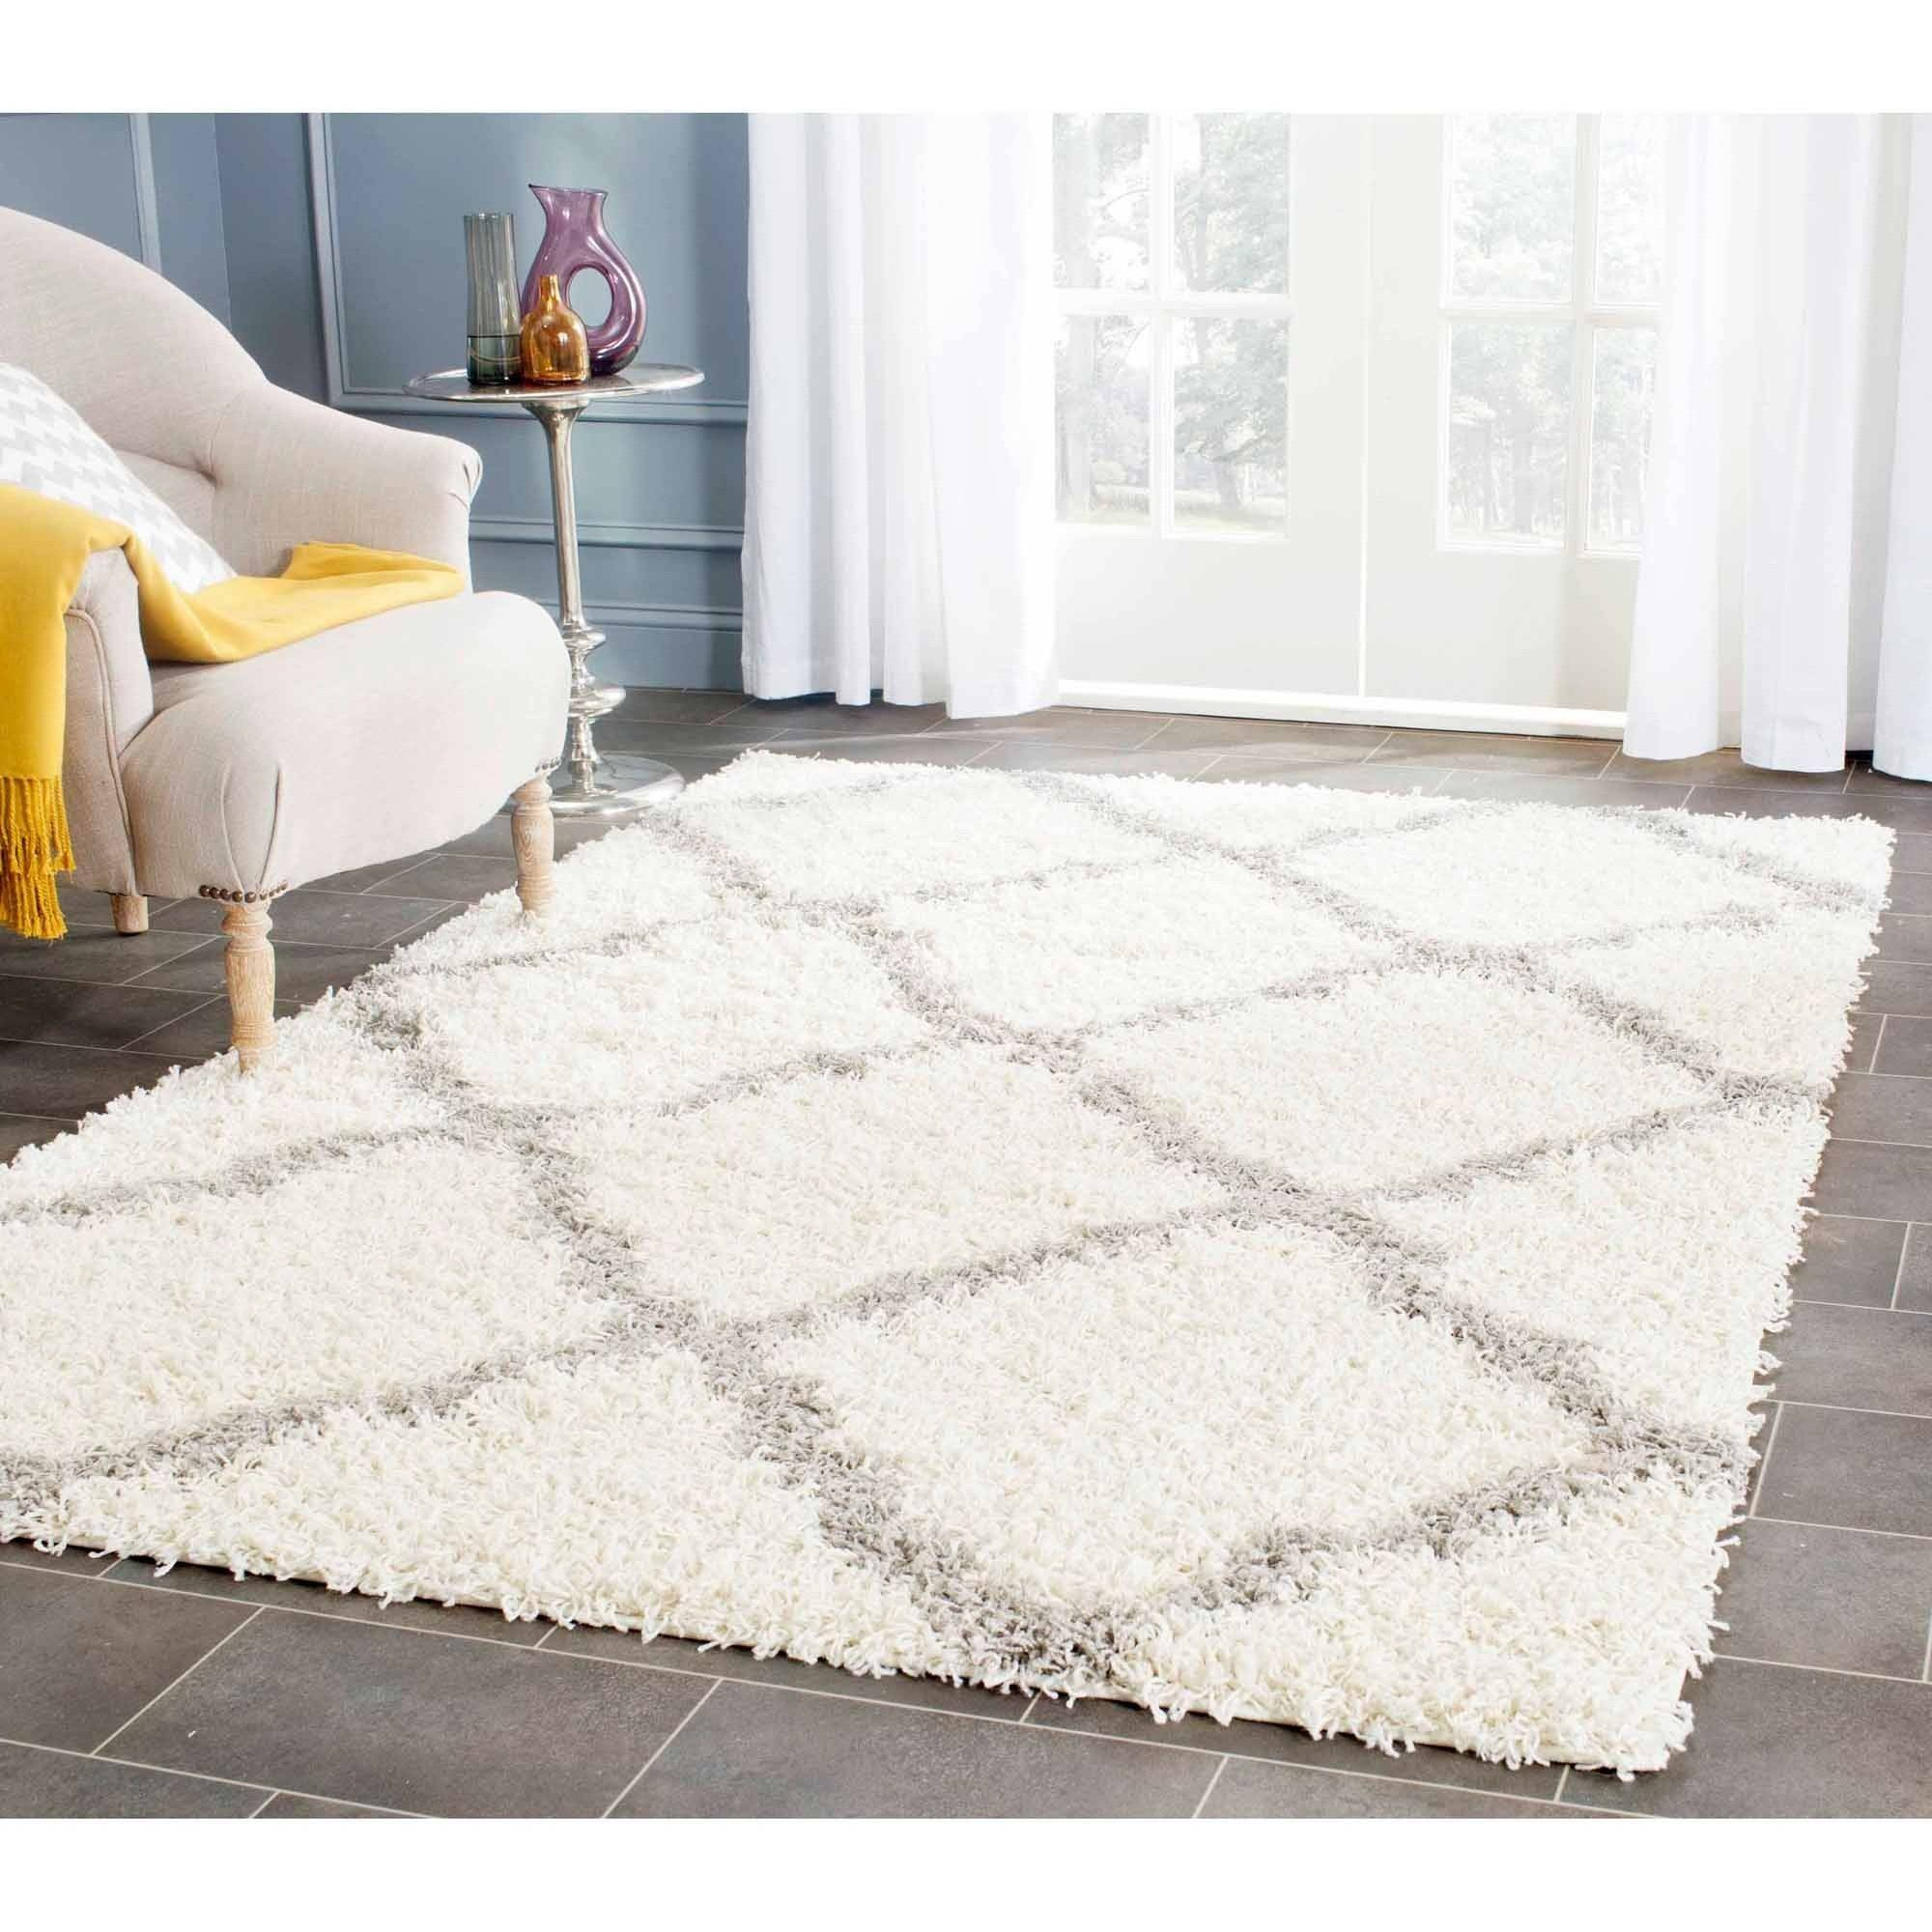 Safavieh Dallas Power-Loomed Shag Area Rug - Walmart.com